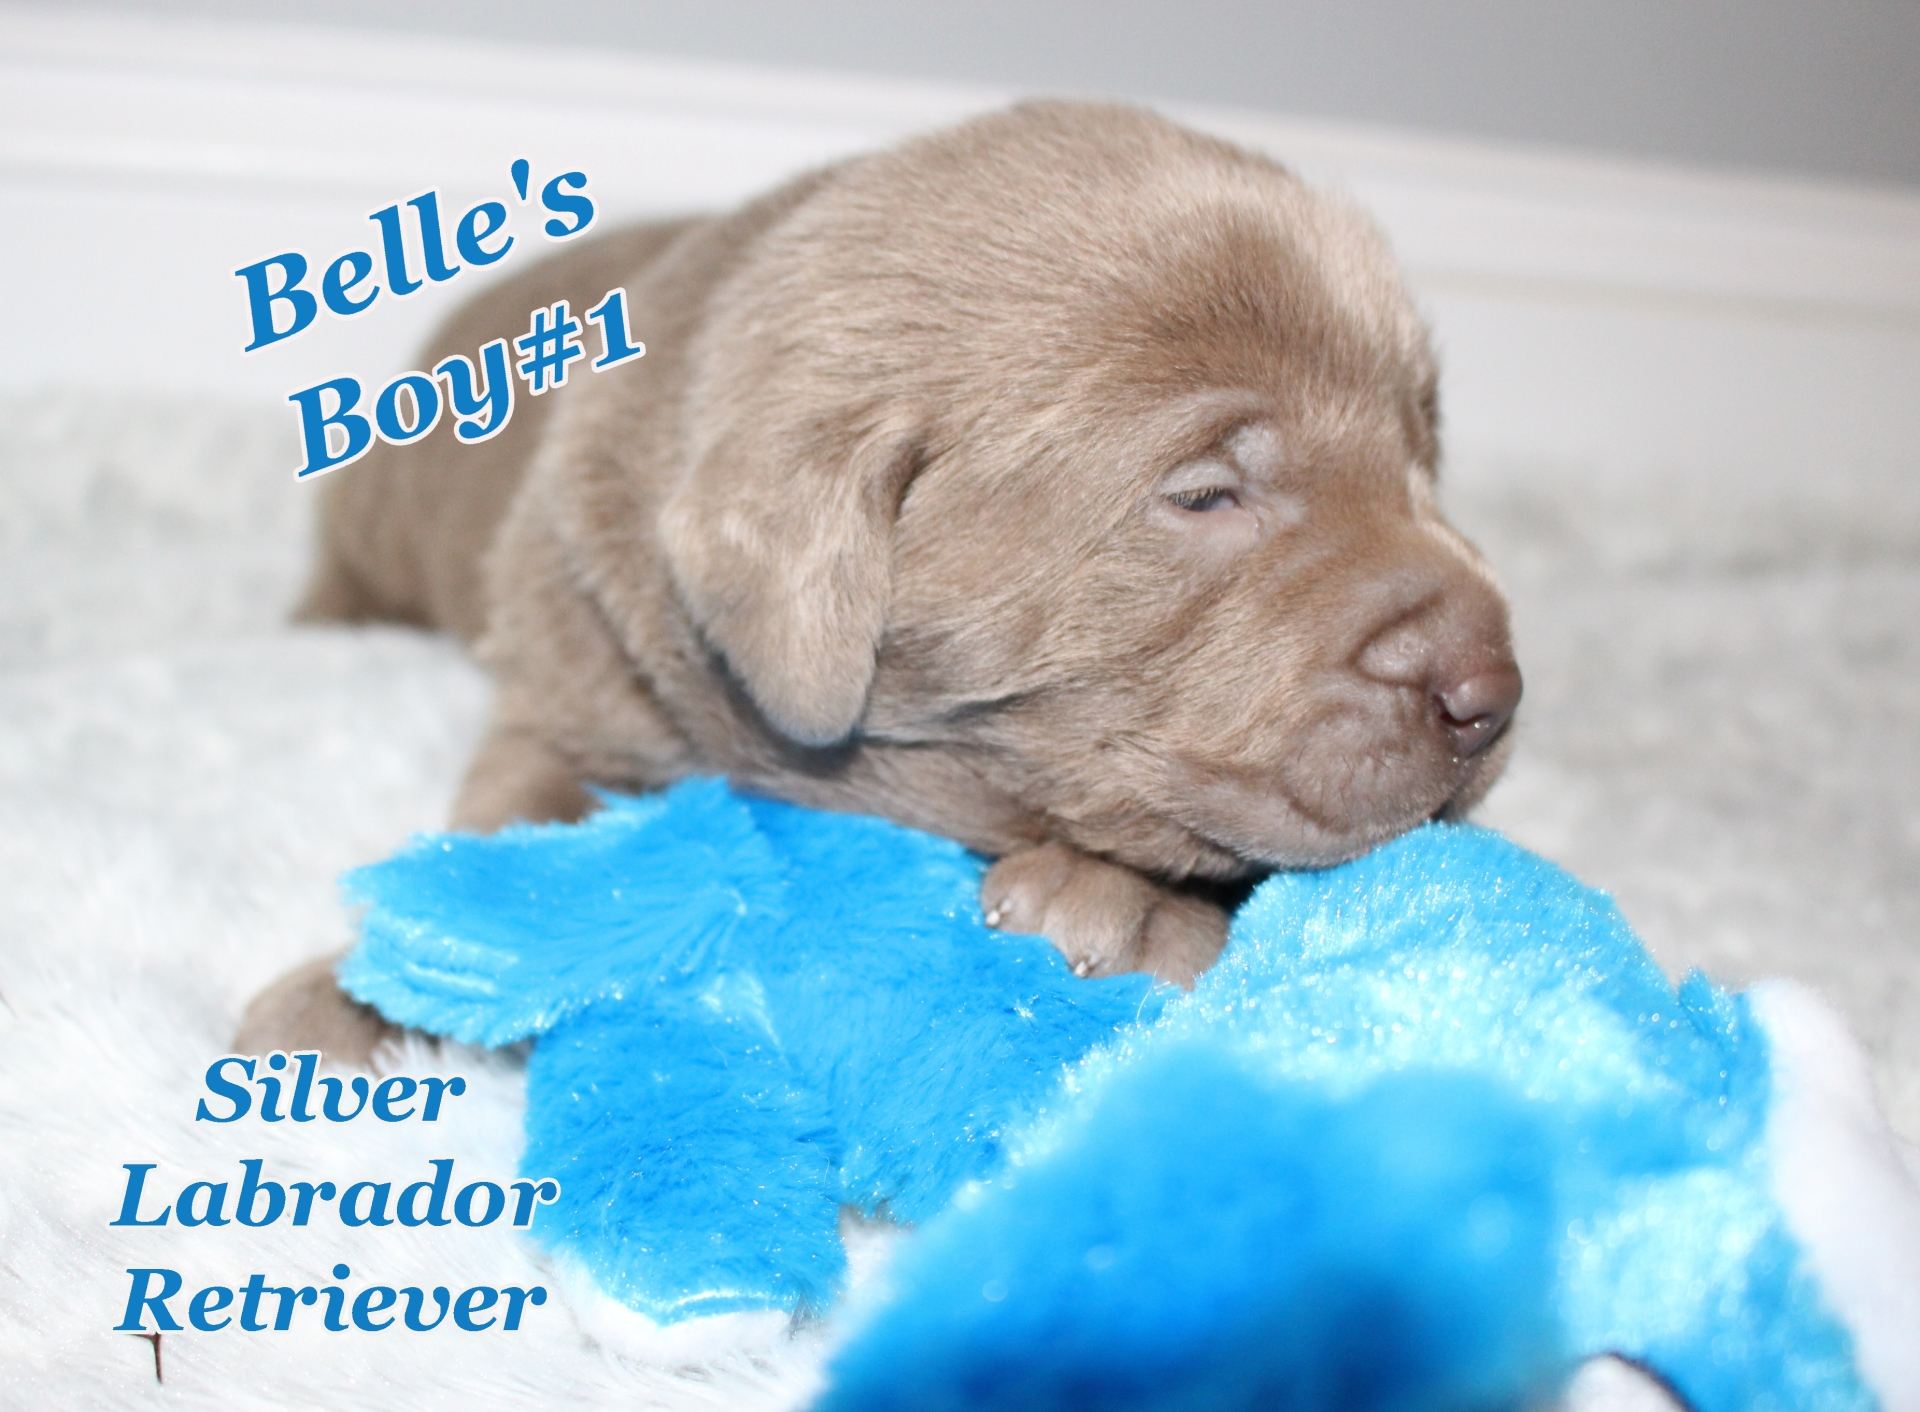 Silver Labrador Retriever Puppies